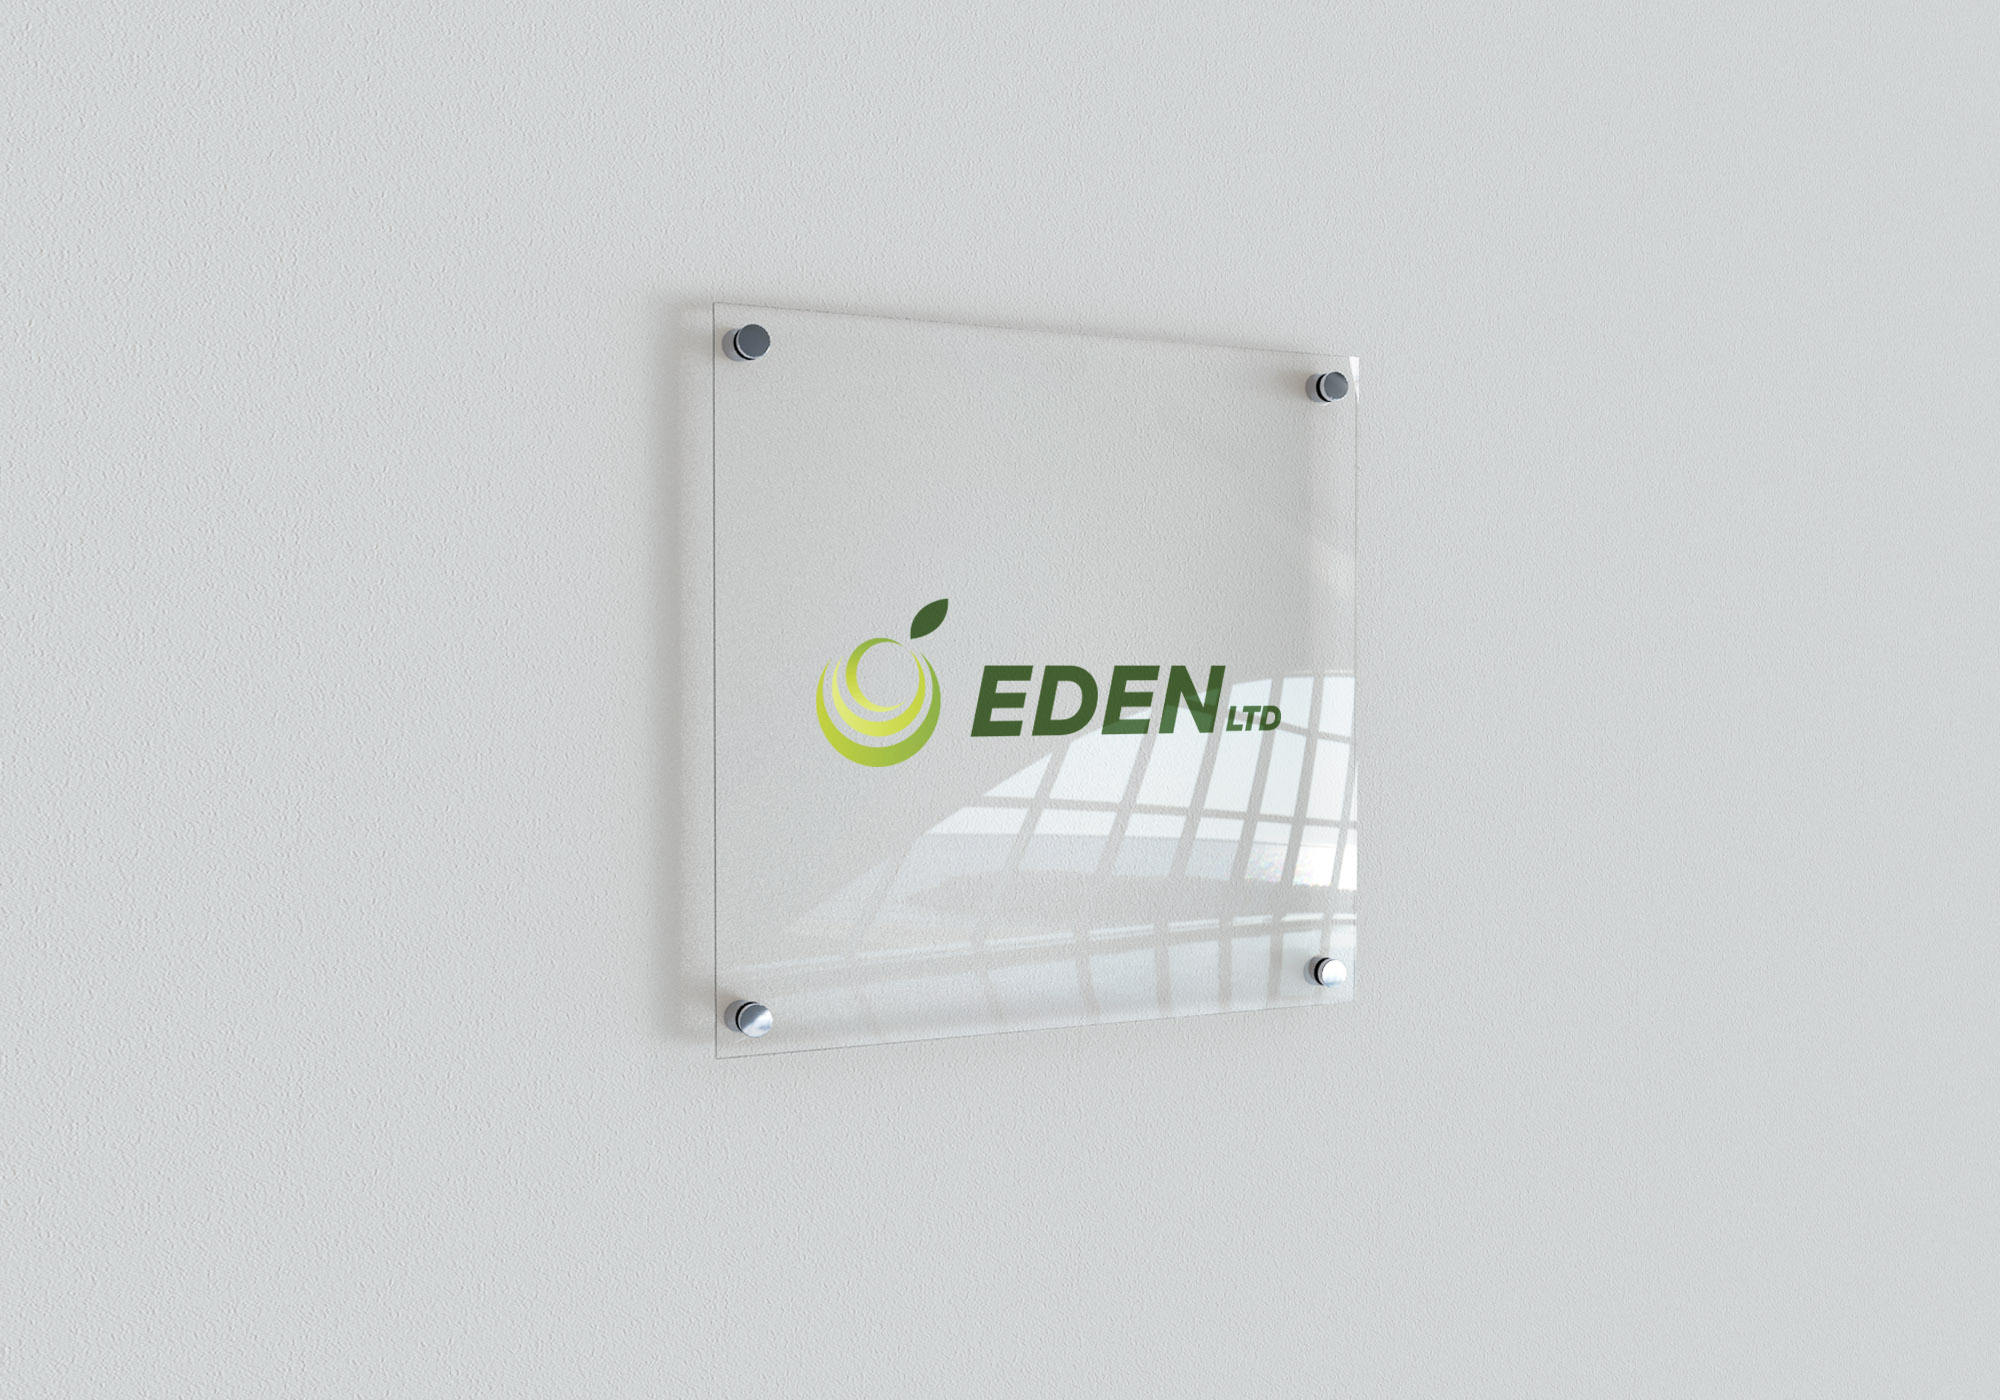 Indoor Signage Mockup clear wall plate EDEN